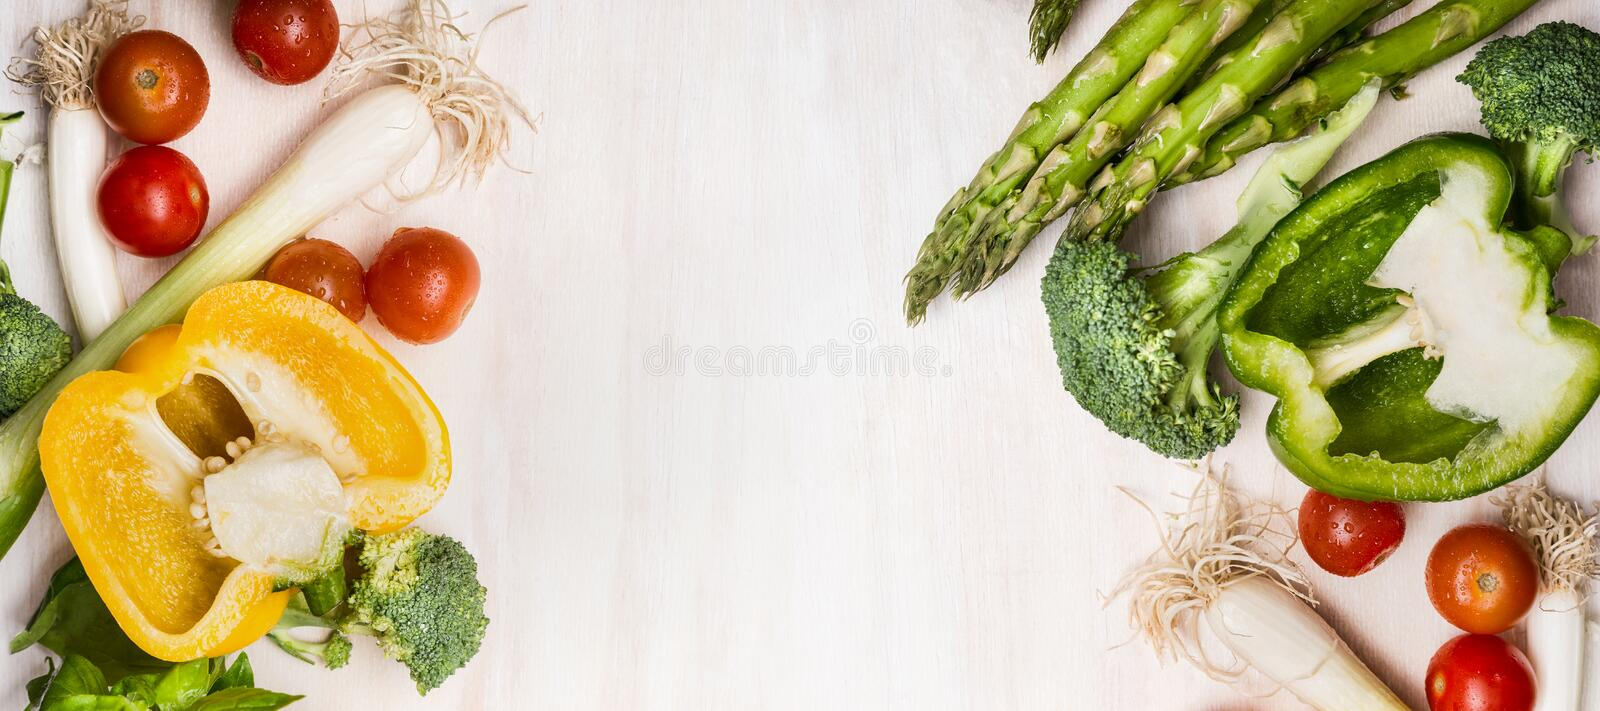 Various vegetables for tasty cooking with asparagus, paprika, tomatoes, broccoli and onions on white wooden background, top view, royalty free stock photos